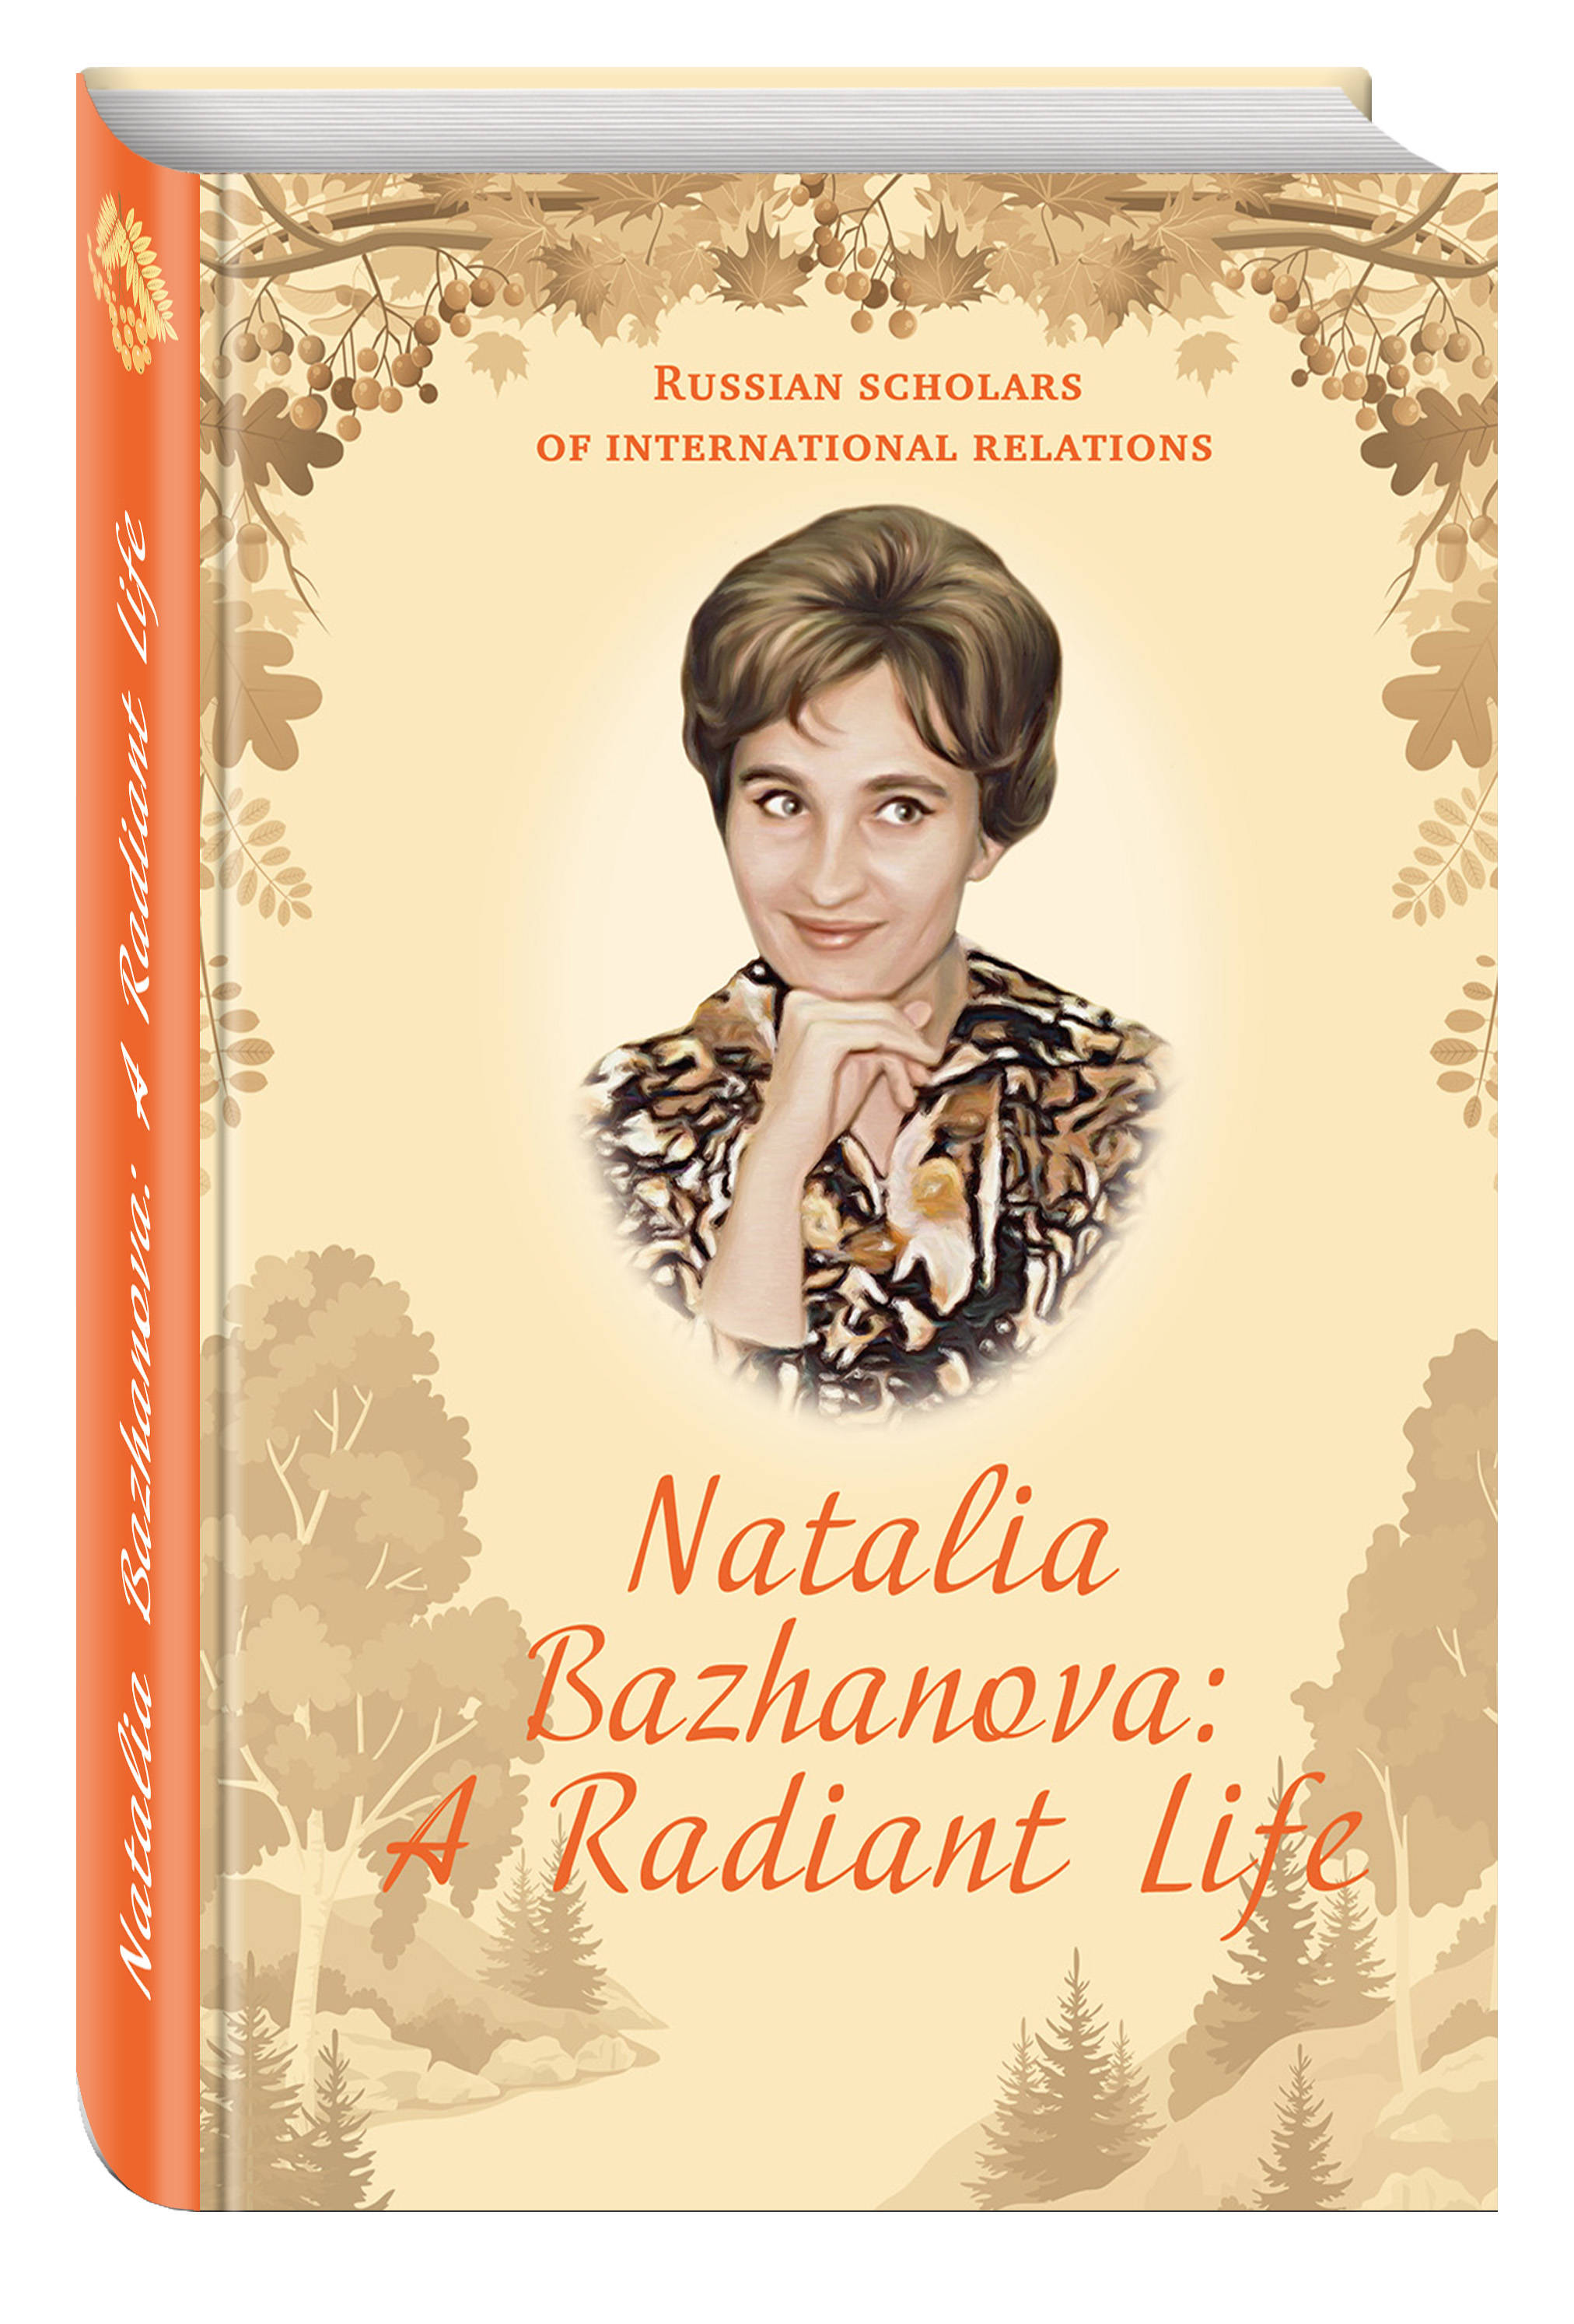 Natalia Bazhanova: A Radiant Life edited by ronald w jones peter b kenen handbook of international economics volume 2 international monetary economics and finance